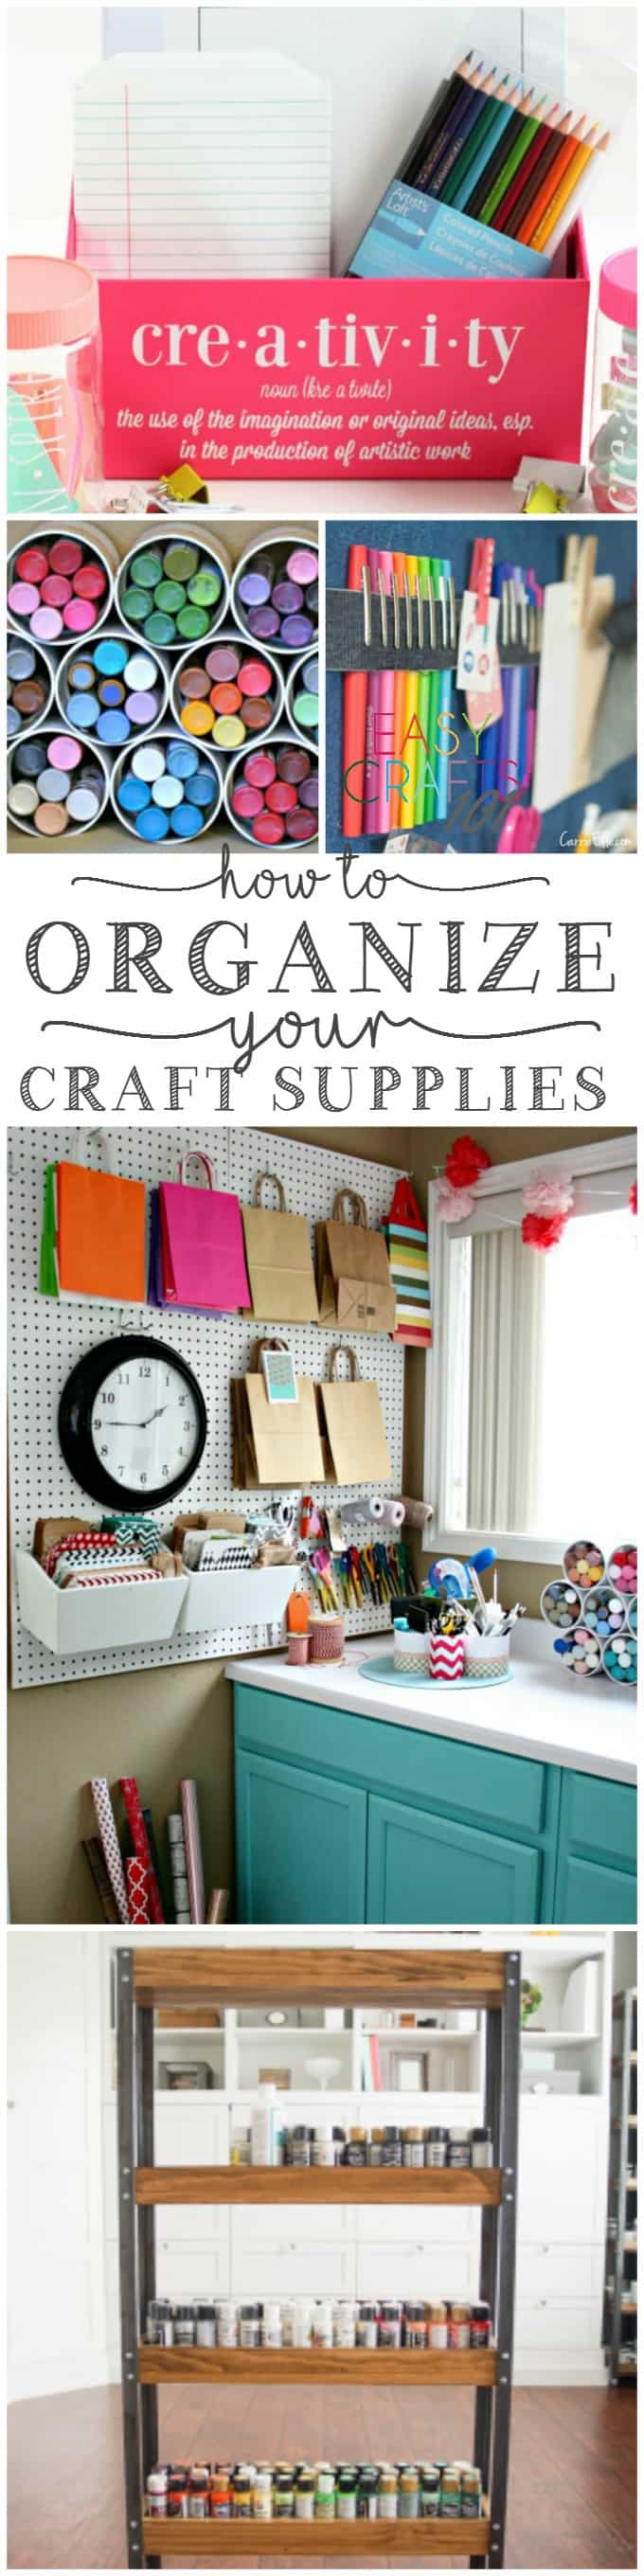 Craft room organization ideas easy crafts 101 for Craft supplies organization ideas